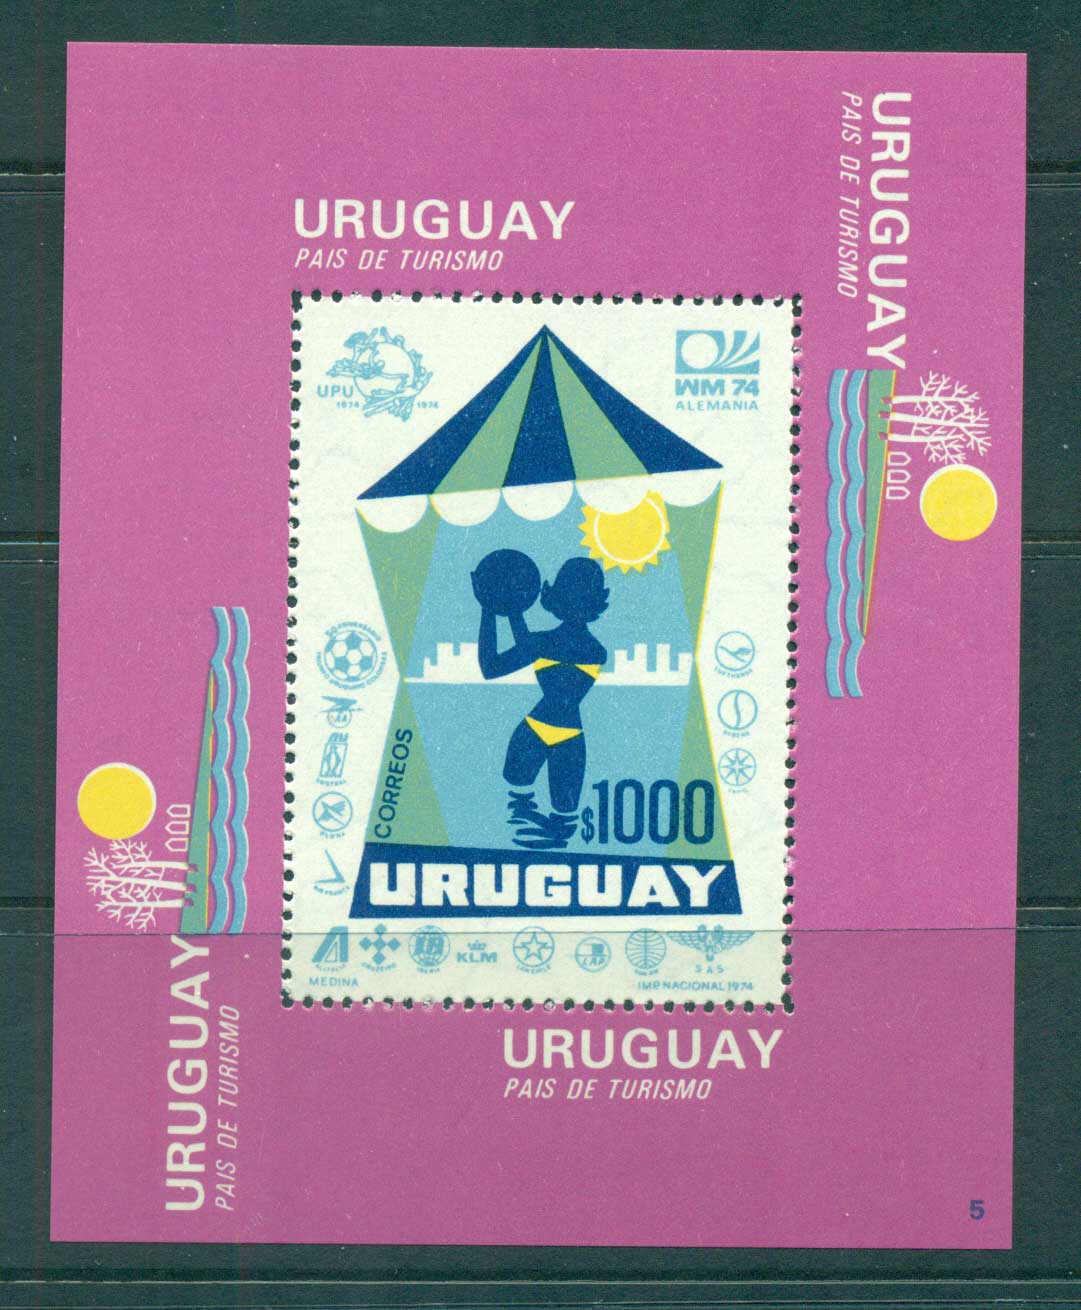 Uruguay 1974 UPU Centenary/Tourism MS MUH lot56360